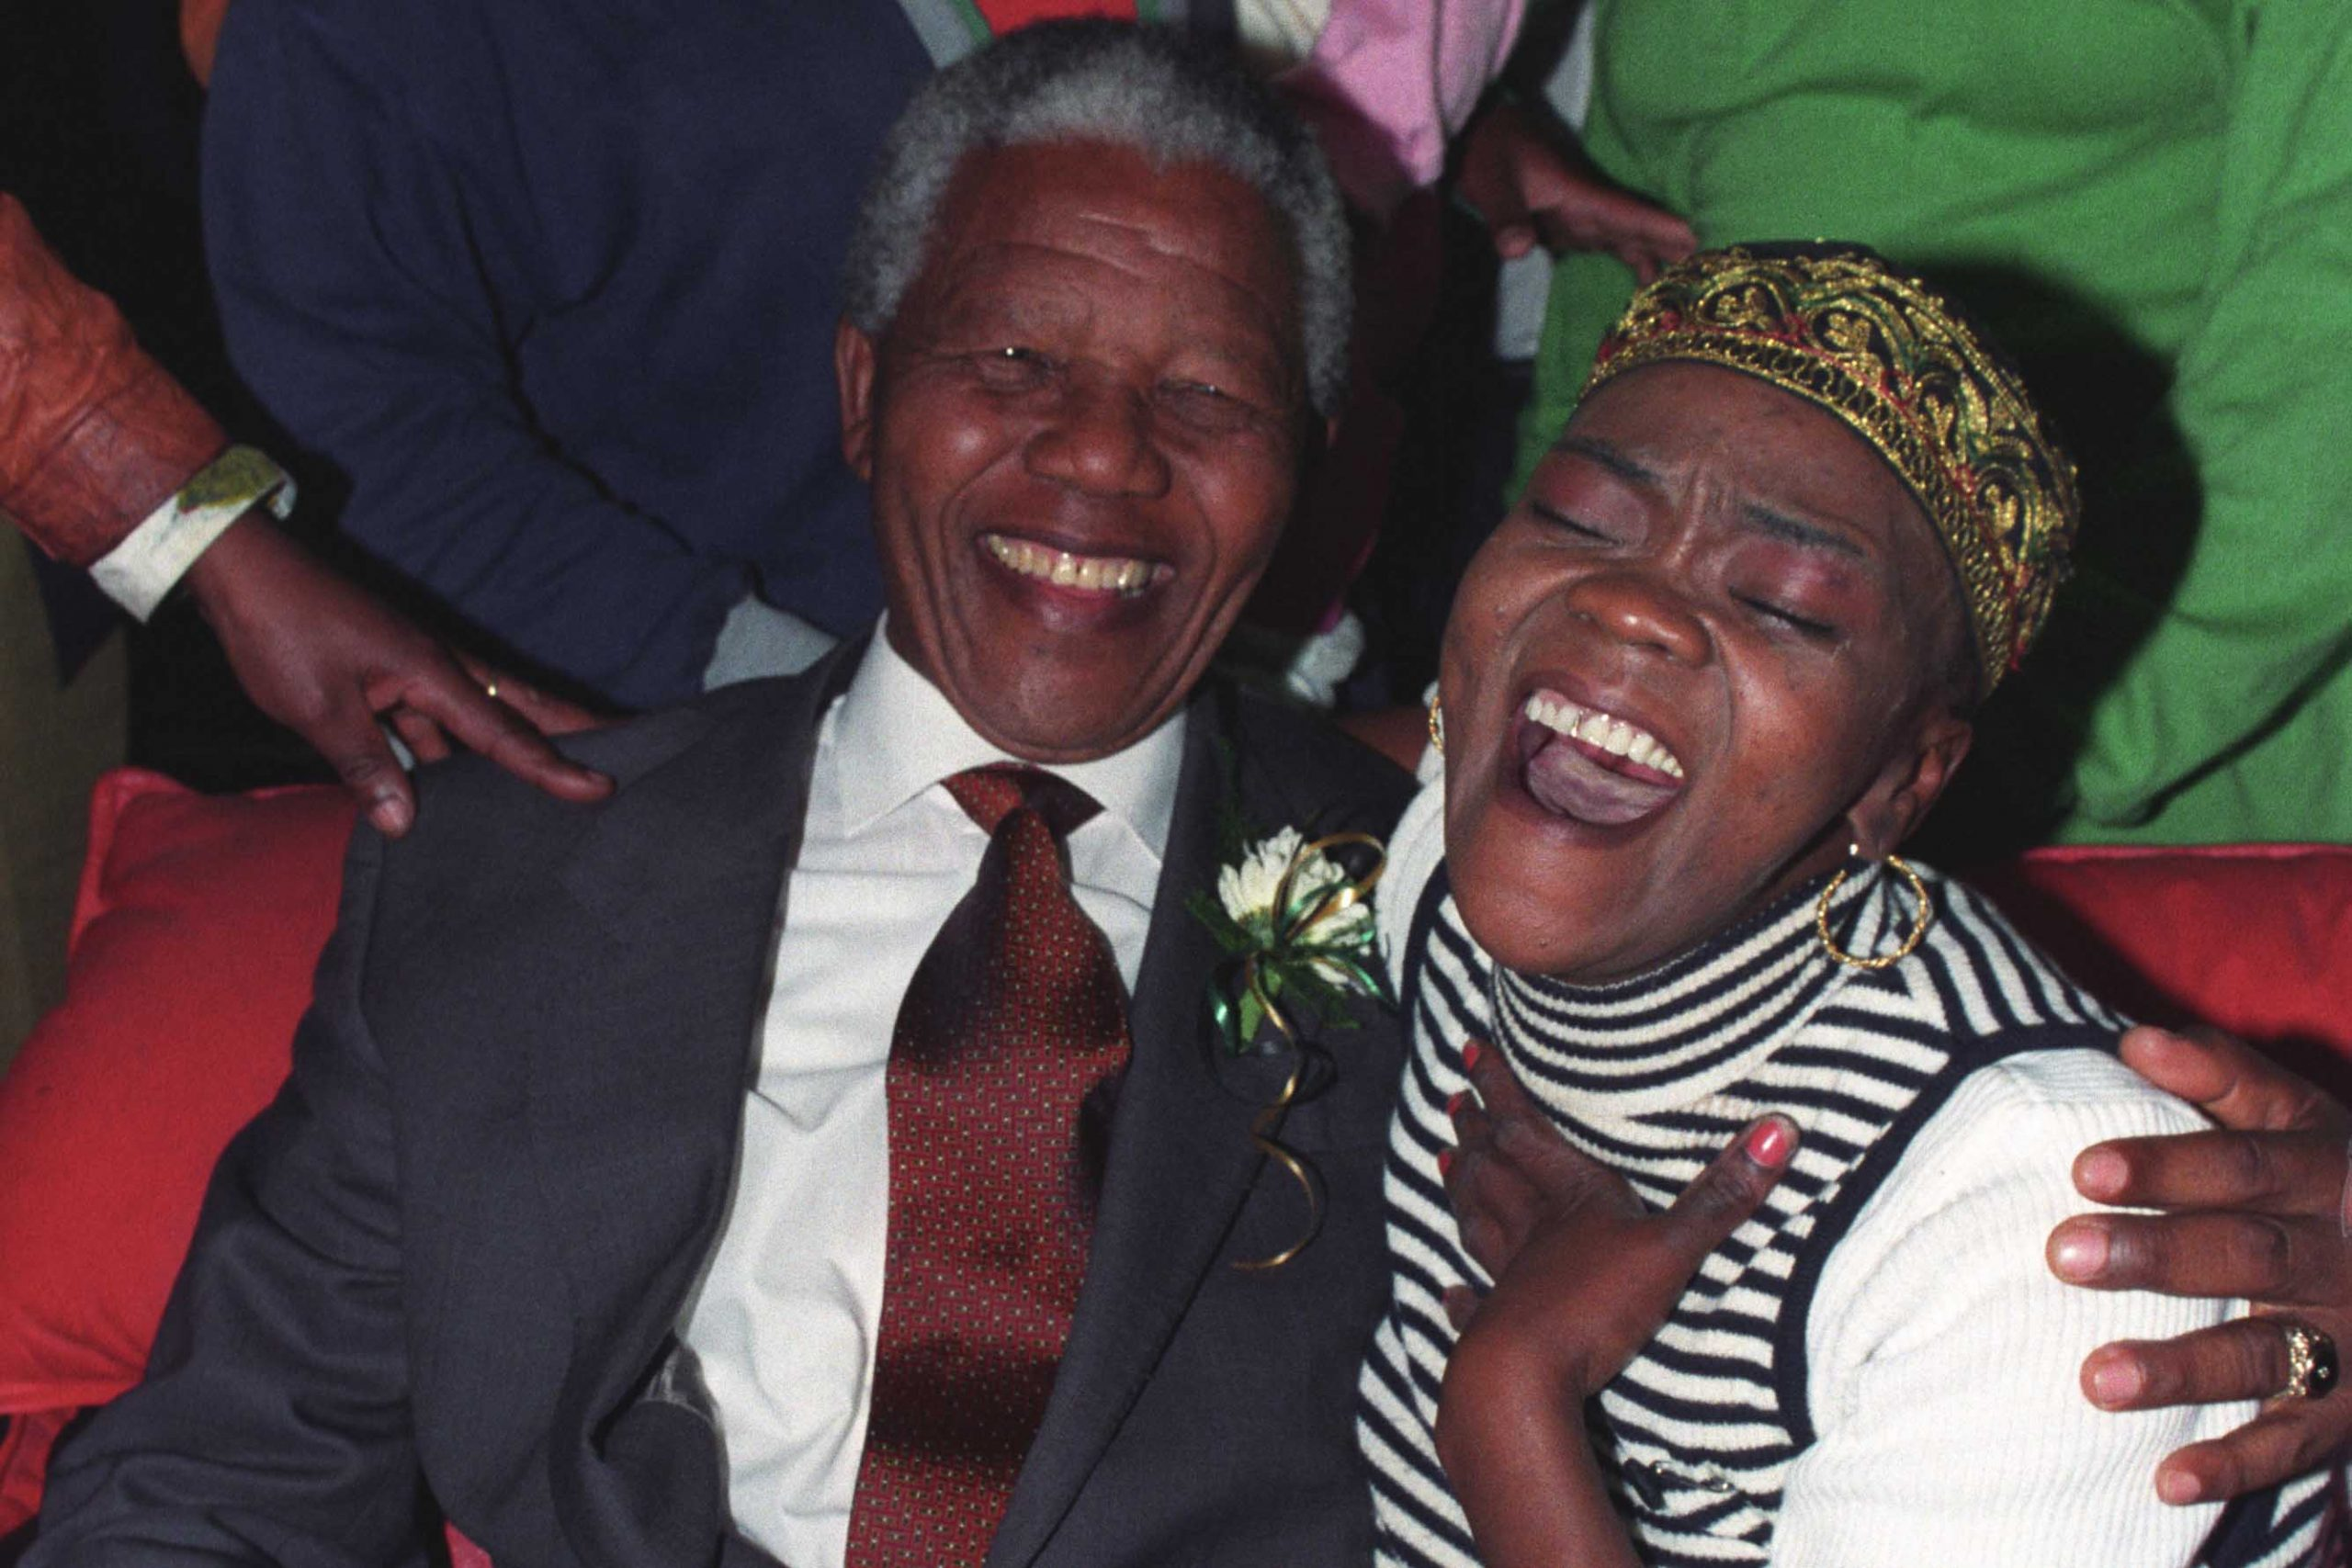 14 August 1993: Singer Brenda Fassie spends time in her home in Langa with Nelson Mandela. In May 2004, at the age of 40, Fassie suffered a severe asthma attack that triggered a fatal cardiac arrest. (Photograph by Gallo Images/ Oryx Media Archive)